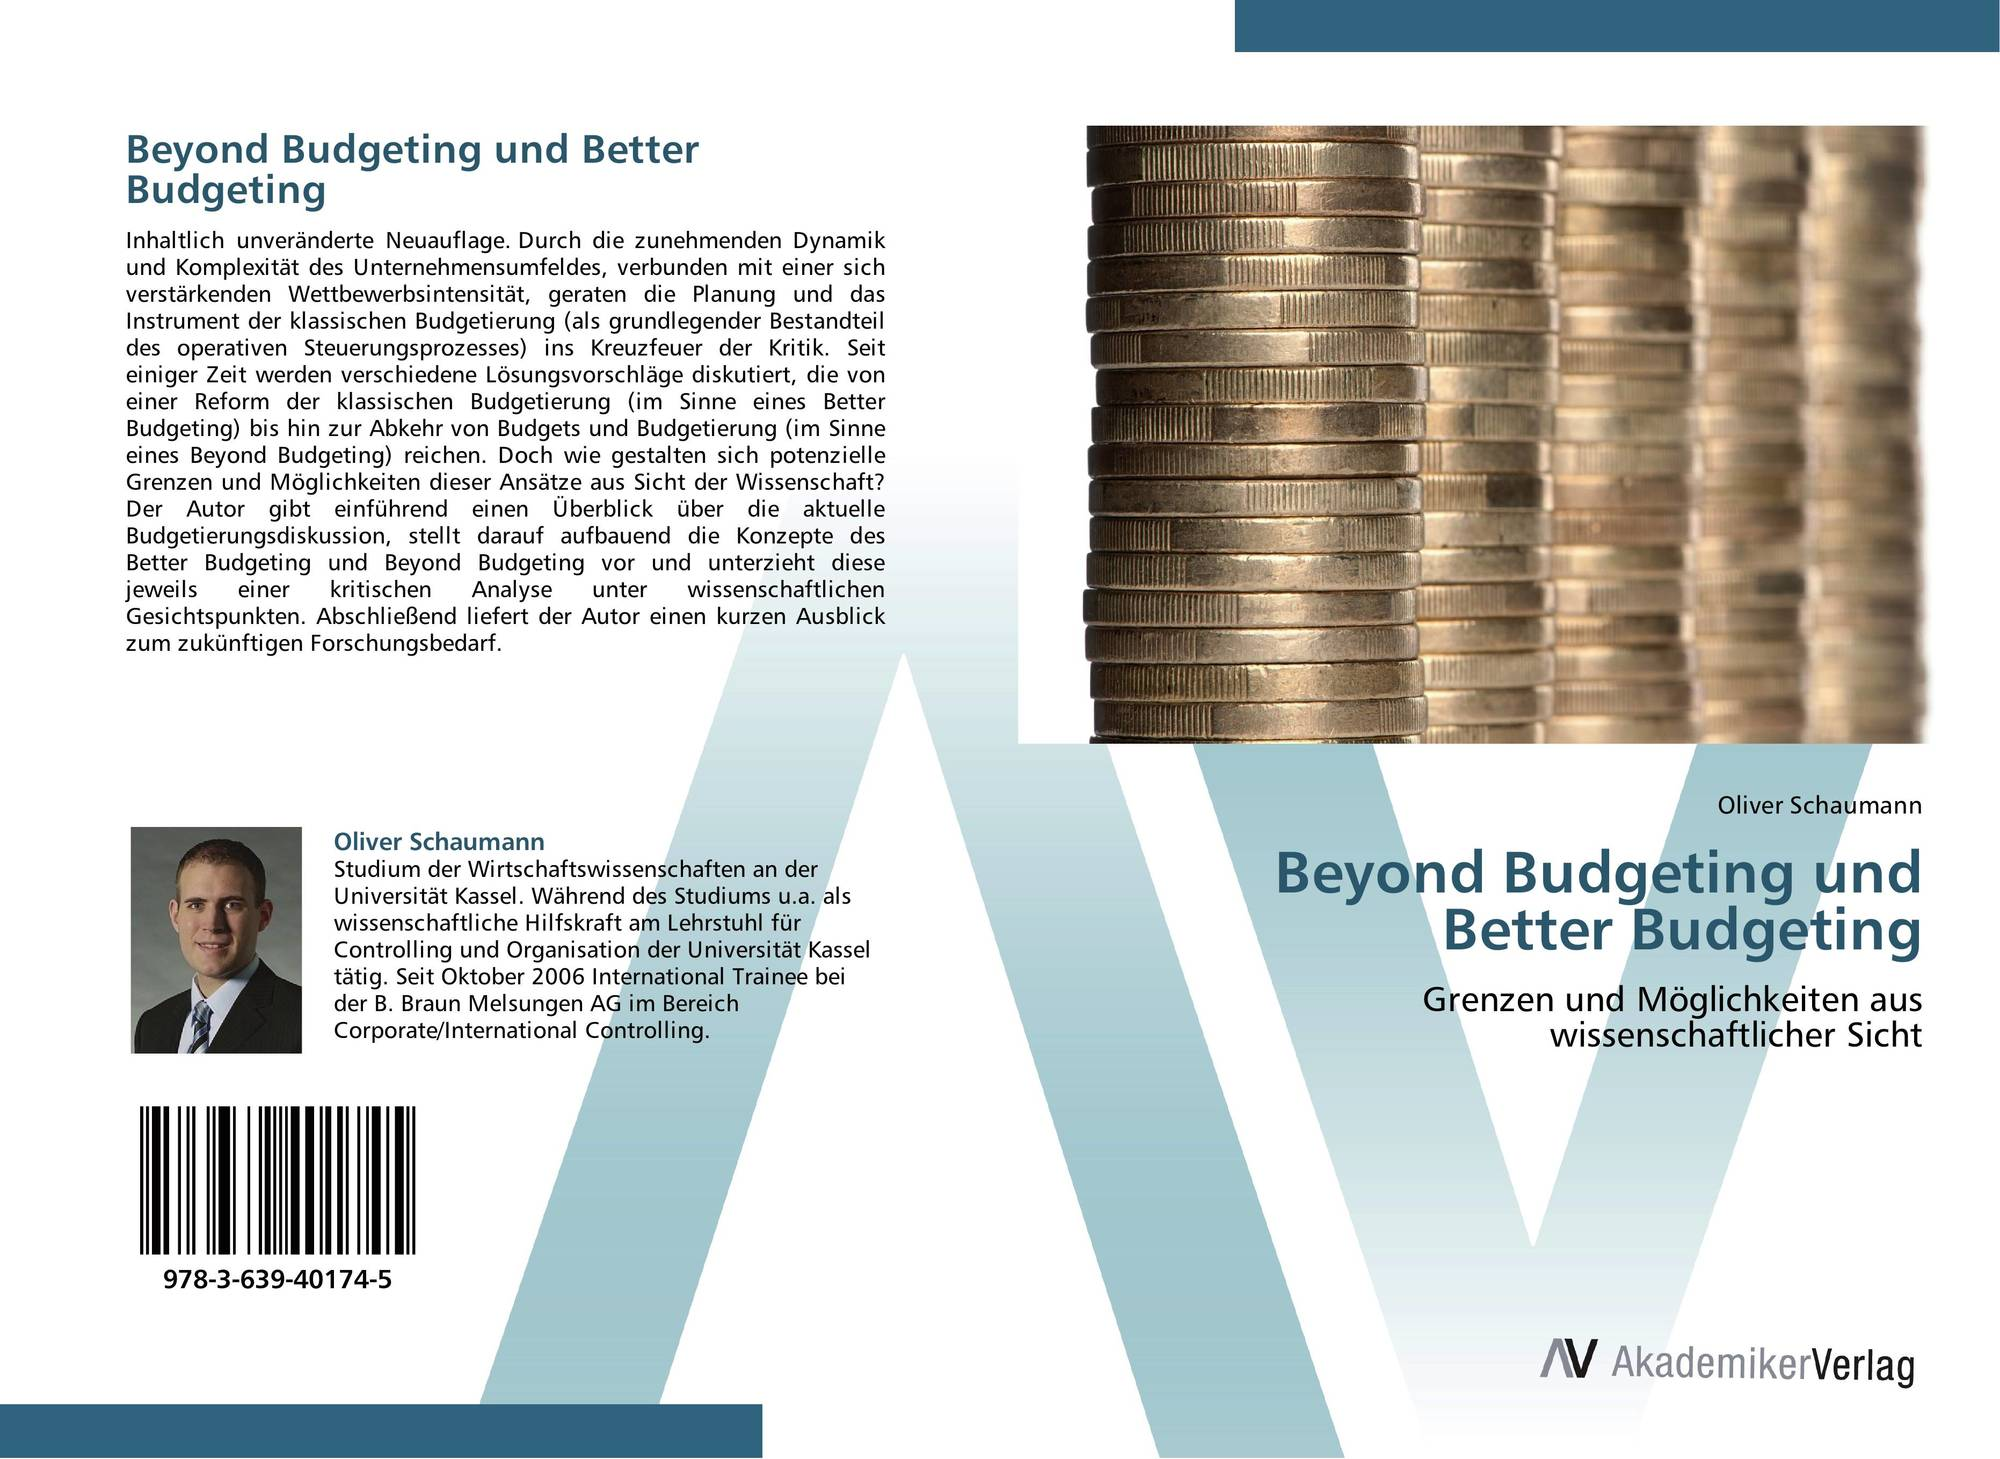 budgeting and beyond budgeting Origin of the beyond budgeting method history the bbrt (beyond budgeting round table) was established in 1998 in response to growing dissatisfaction, indeed frustration, with traditional budgeting.